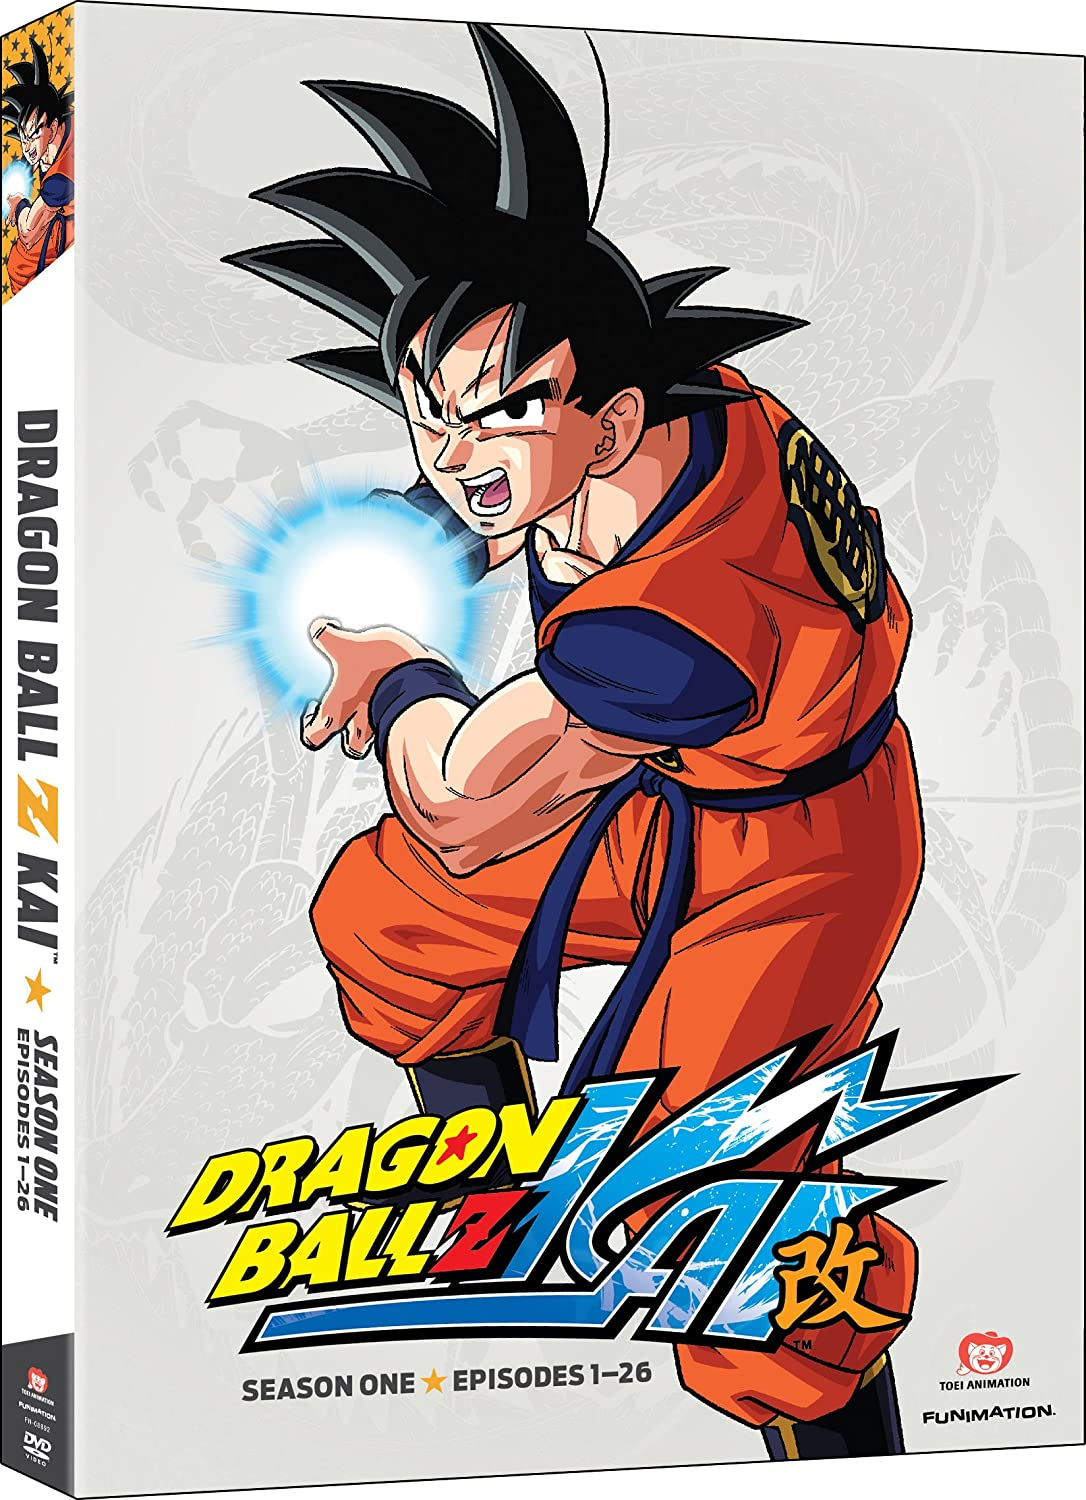 Dragon Ball Z Kai - Season 1: Amazon.ca: Not Available: DVD